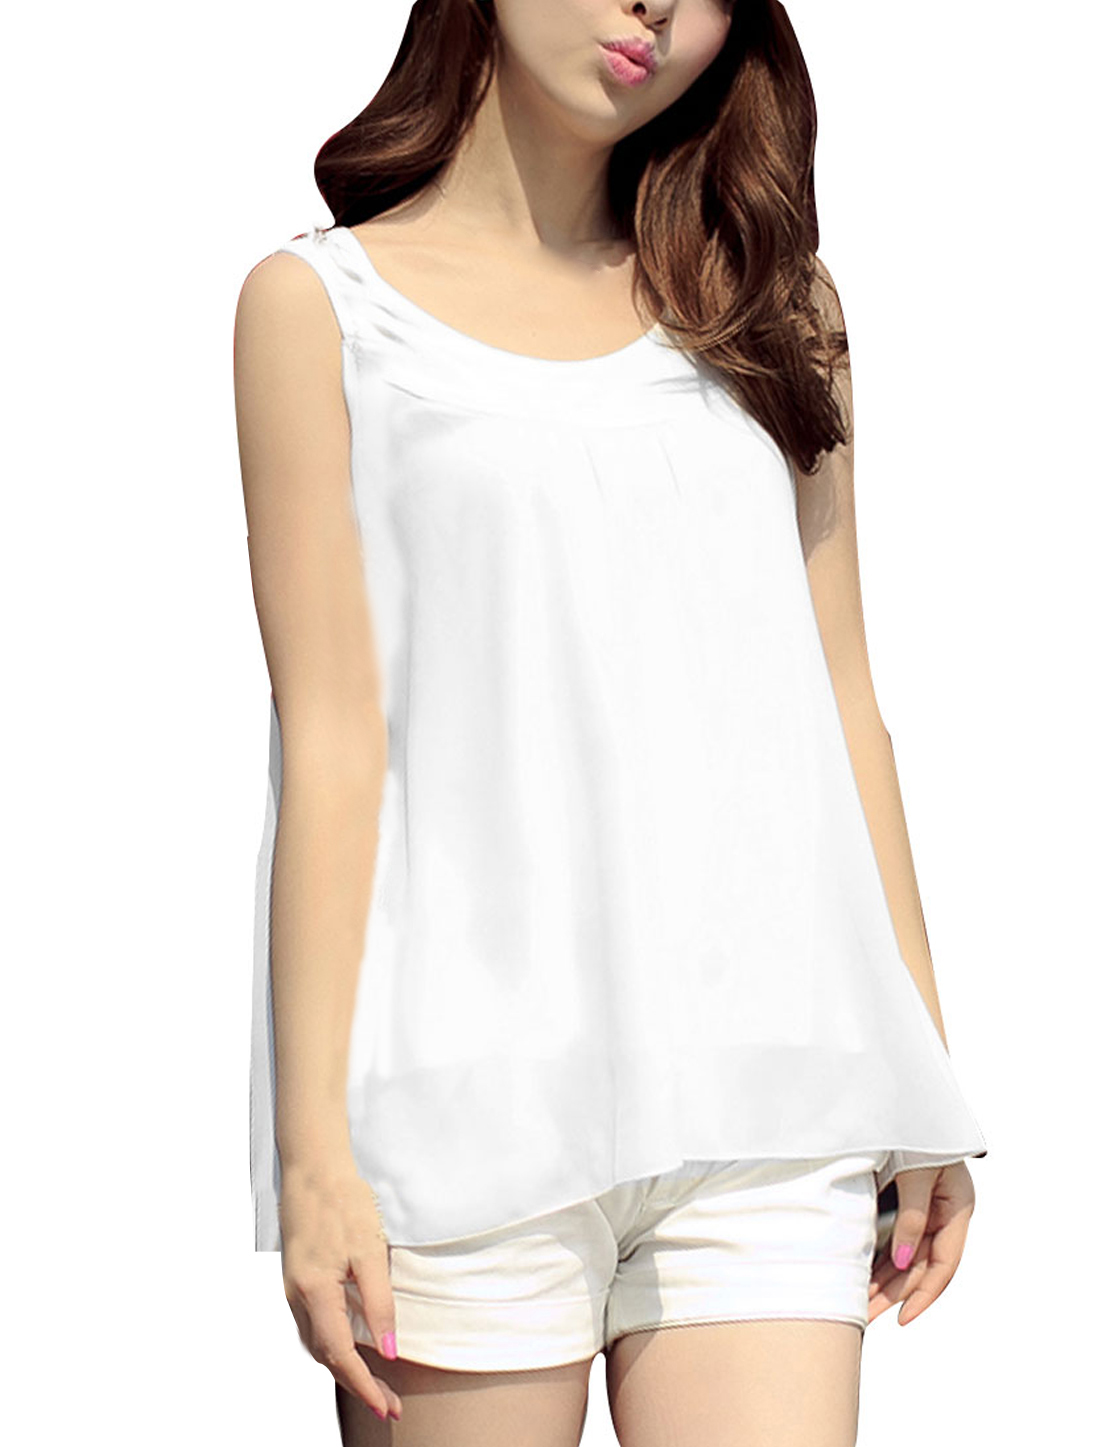 Woman New Fashion Scoop Neck Sleeveless White Summer Tank Tops S